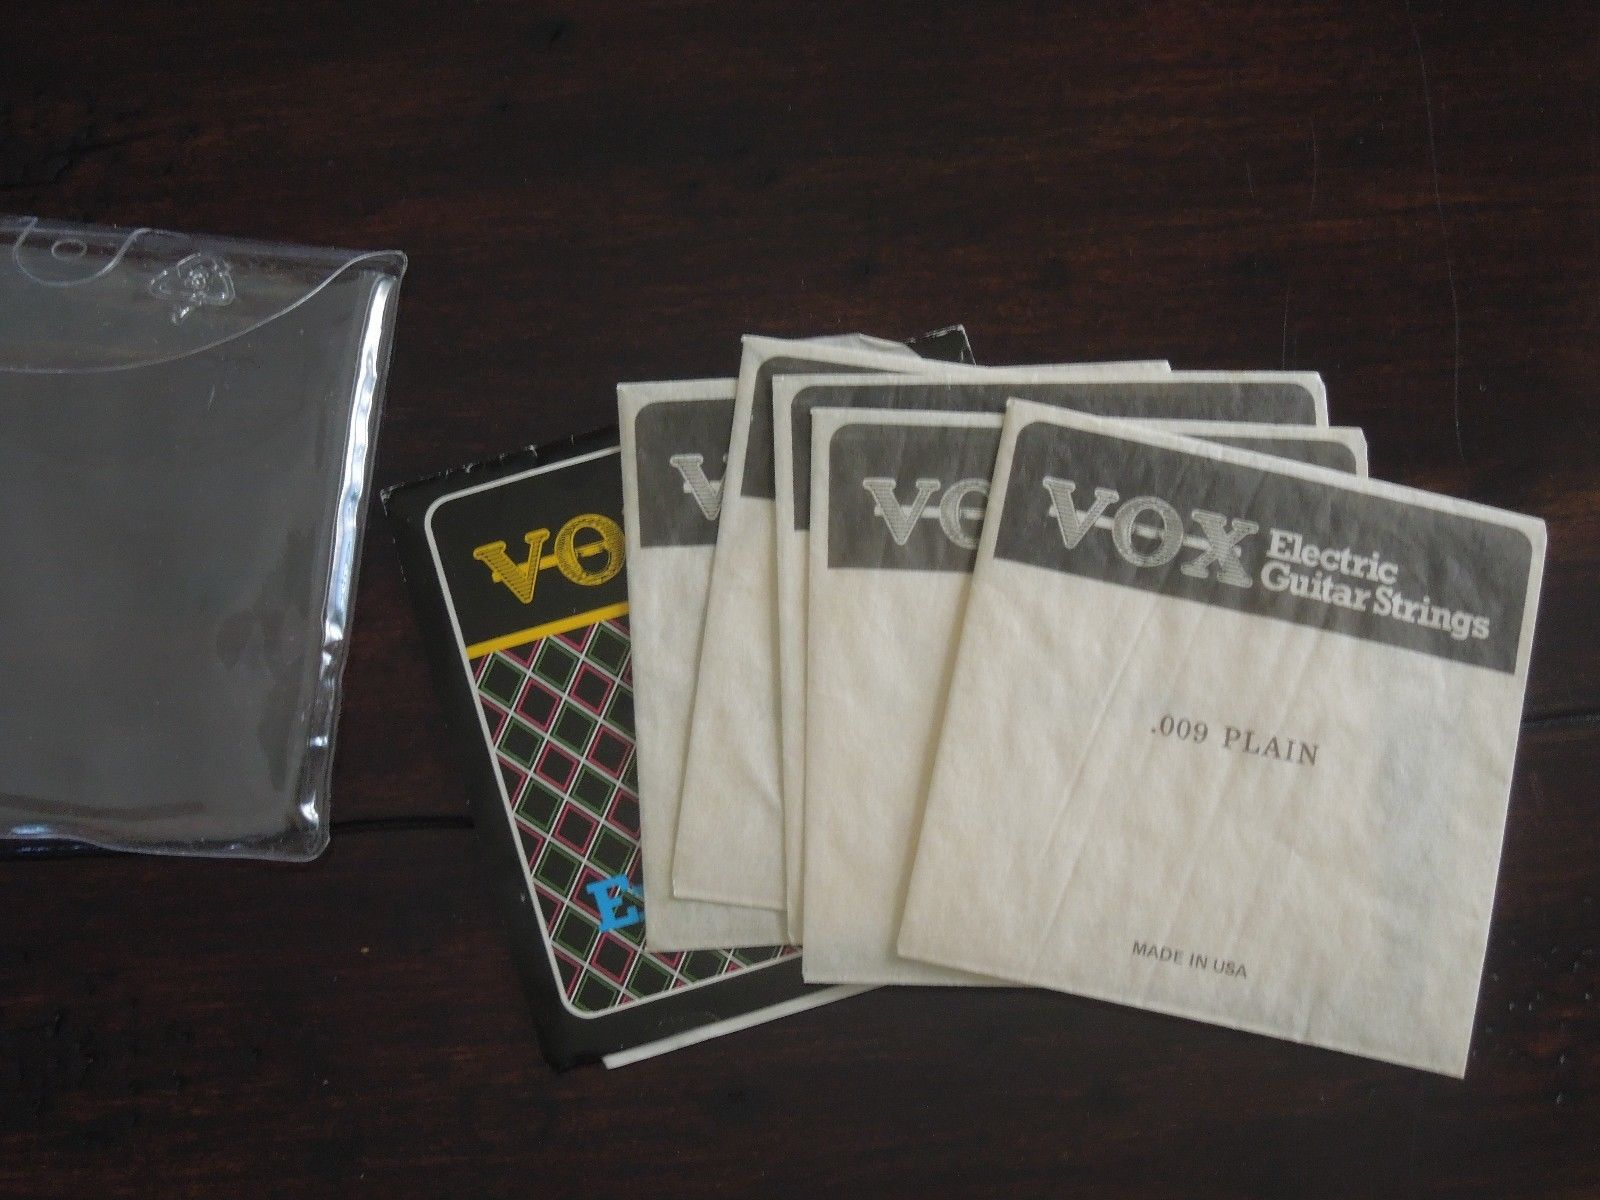 1986 Vox Guitar Strings Pack Extra Light Gauge 009-042 Case Candy For Vox Guitar